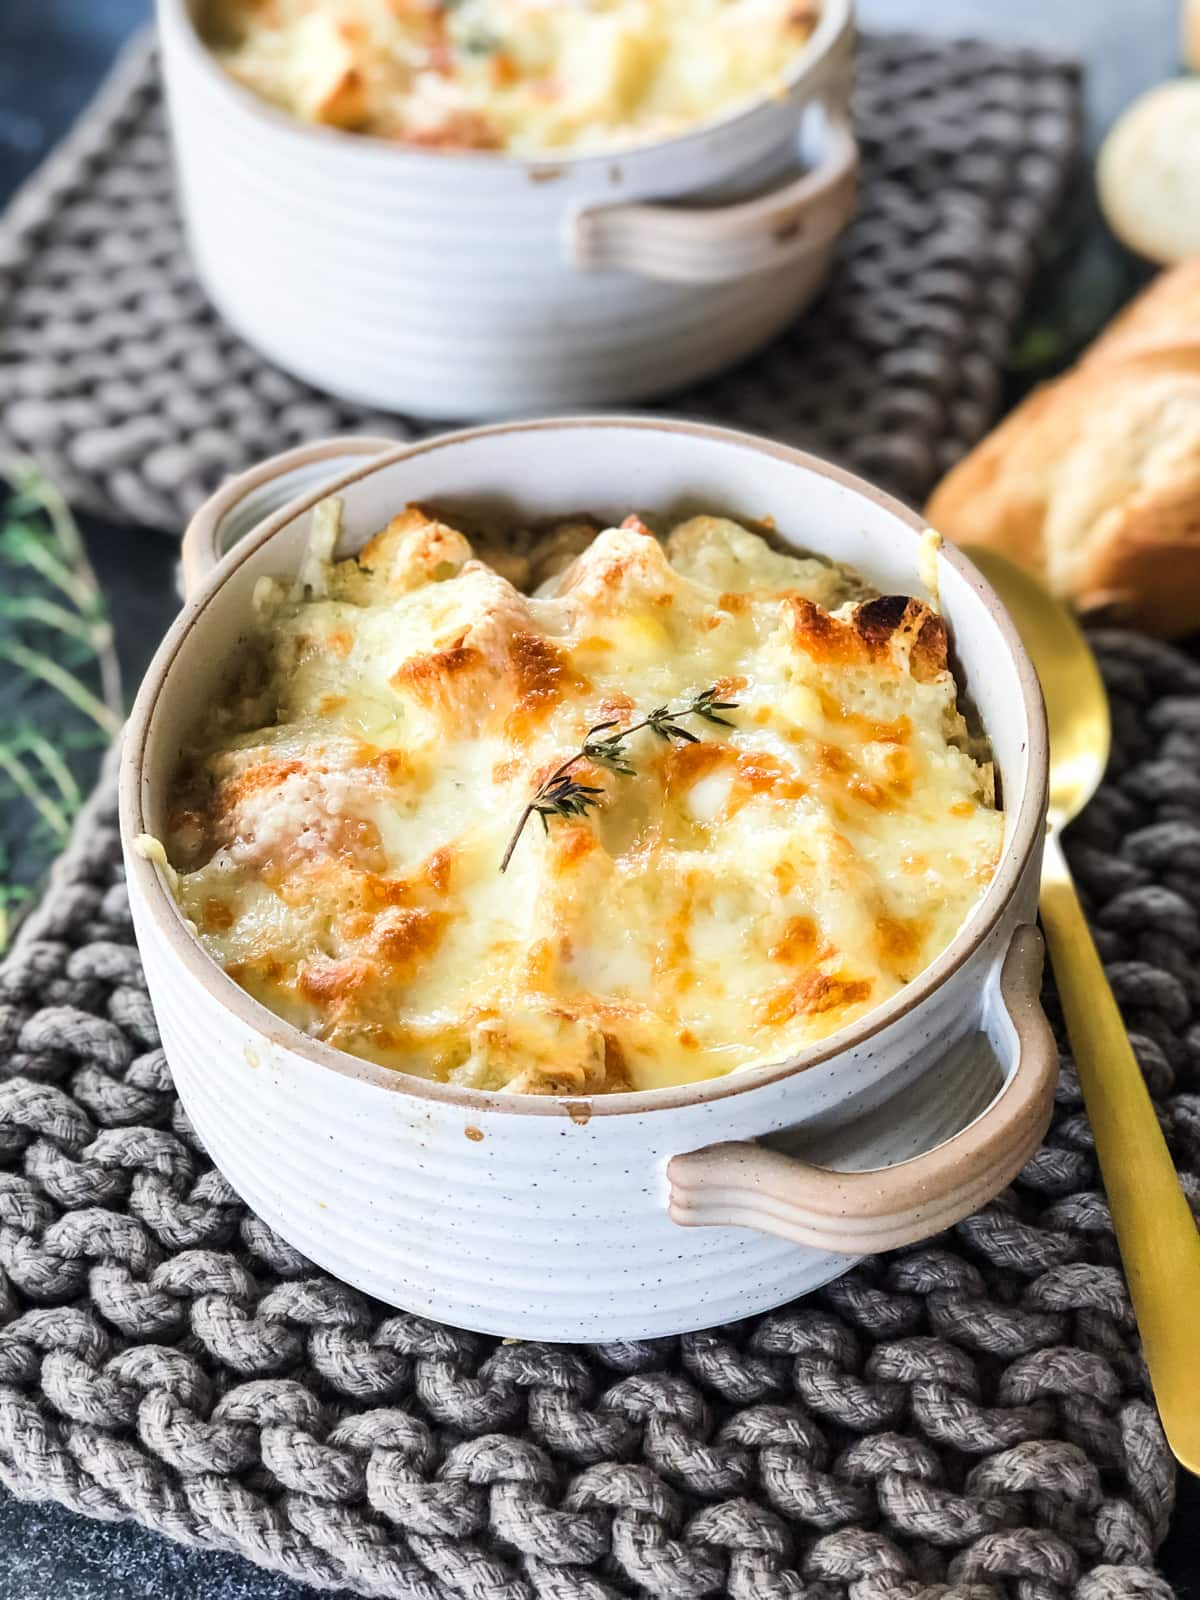 A view of a bowl of French Onion Soup topped with a cheesy bread crust.